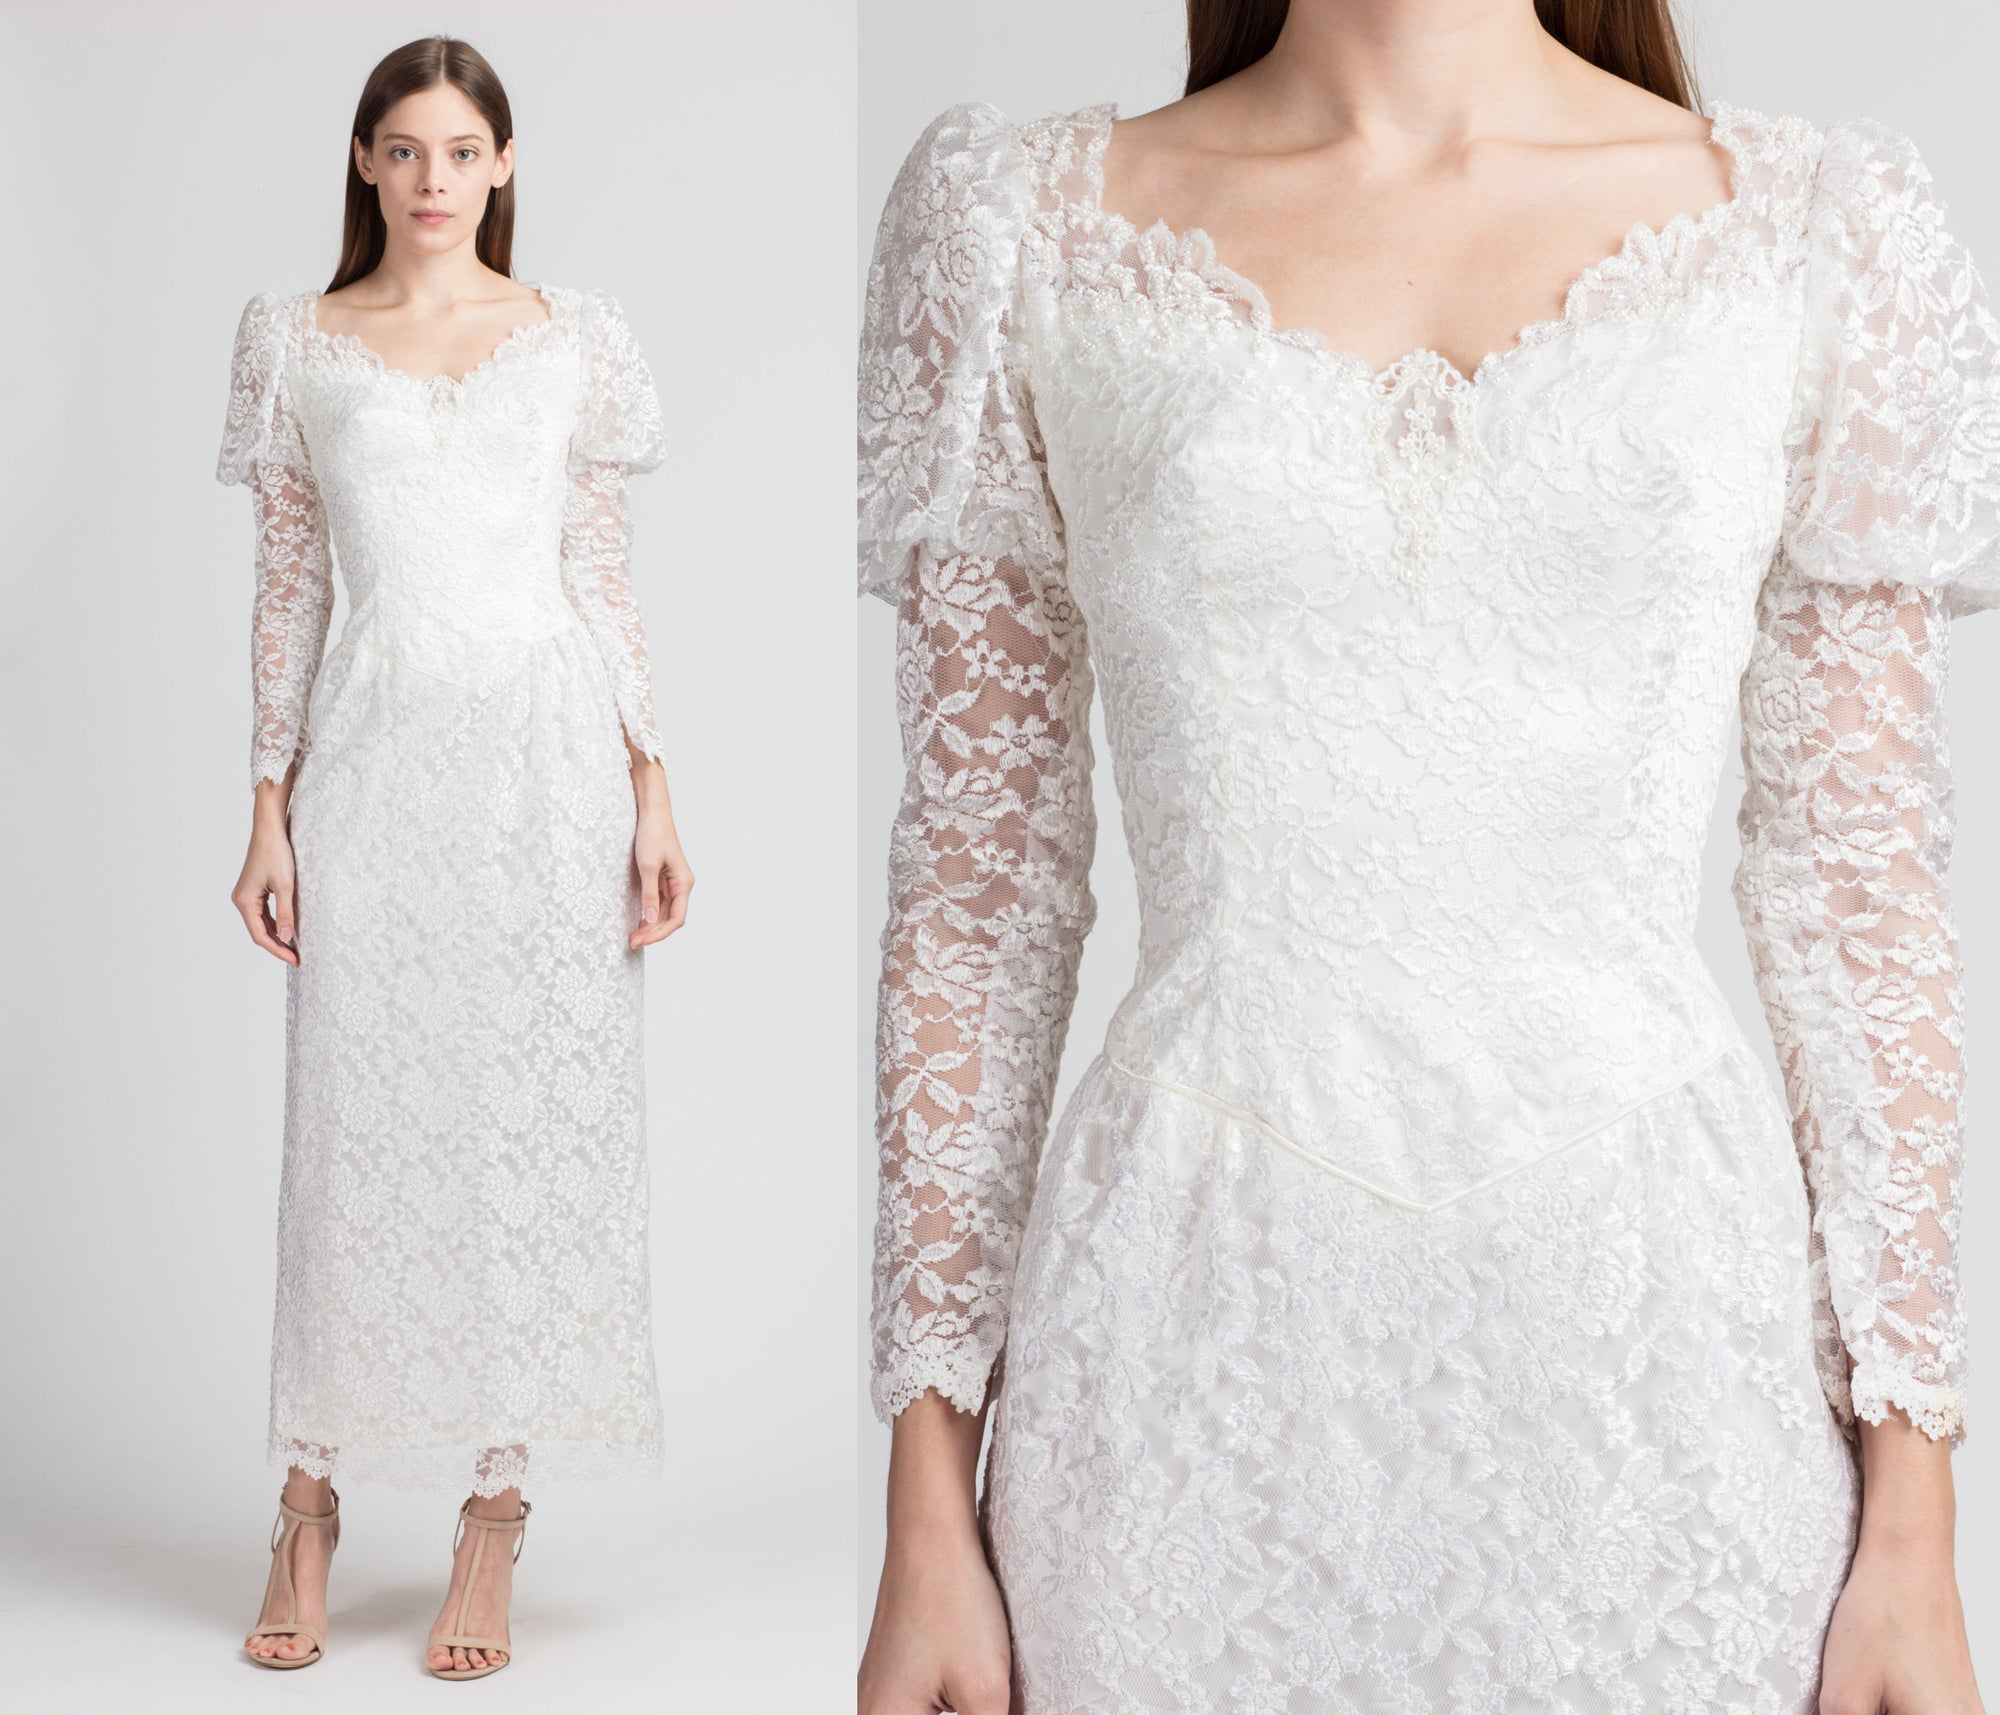 Vintage 80s White Lace Wedding Dress - Extra Small